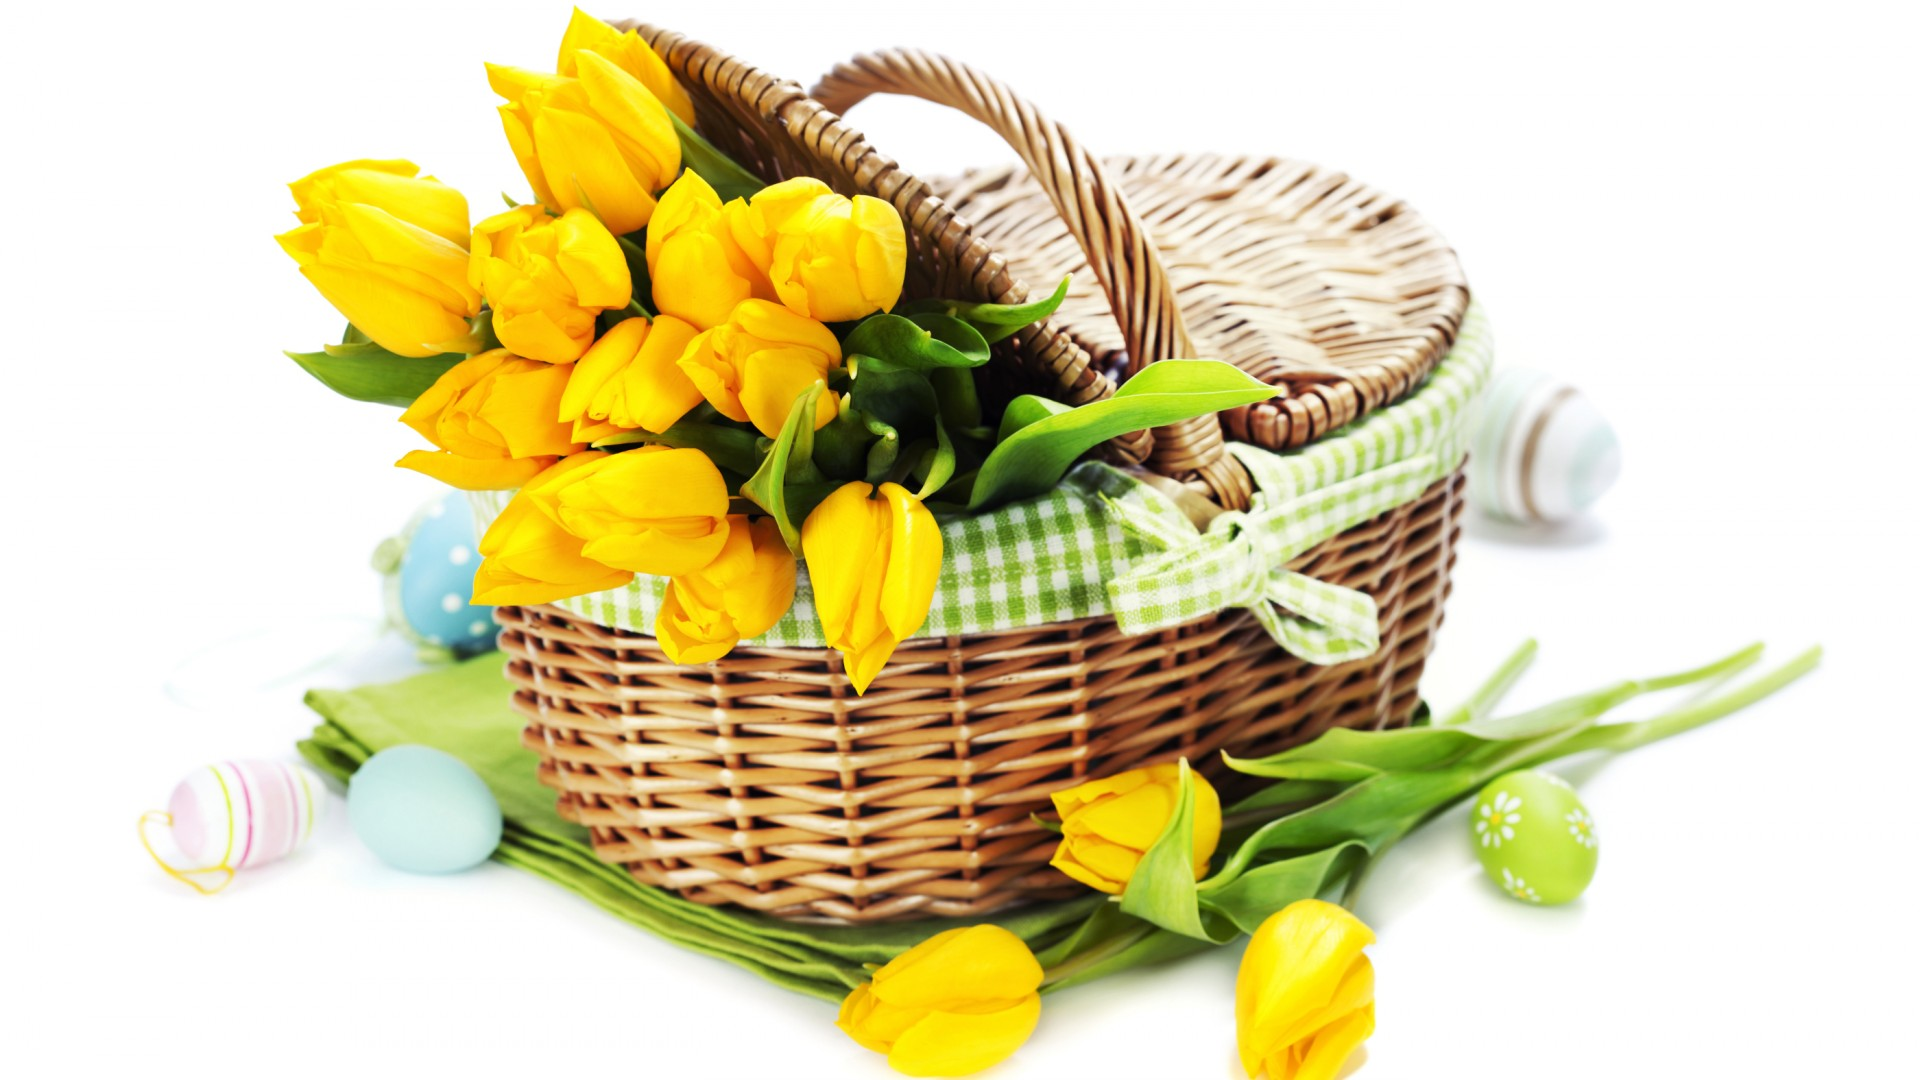 Basket With Flowers free image